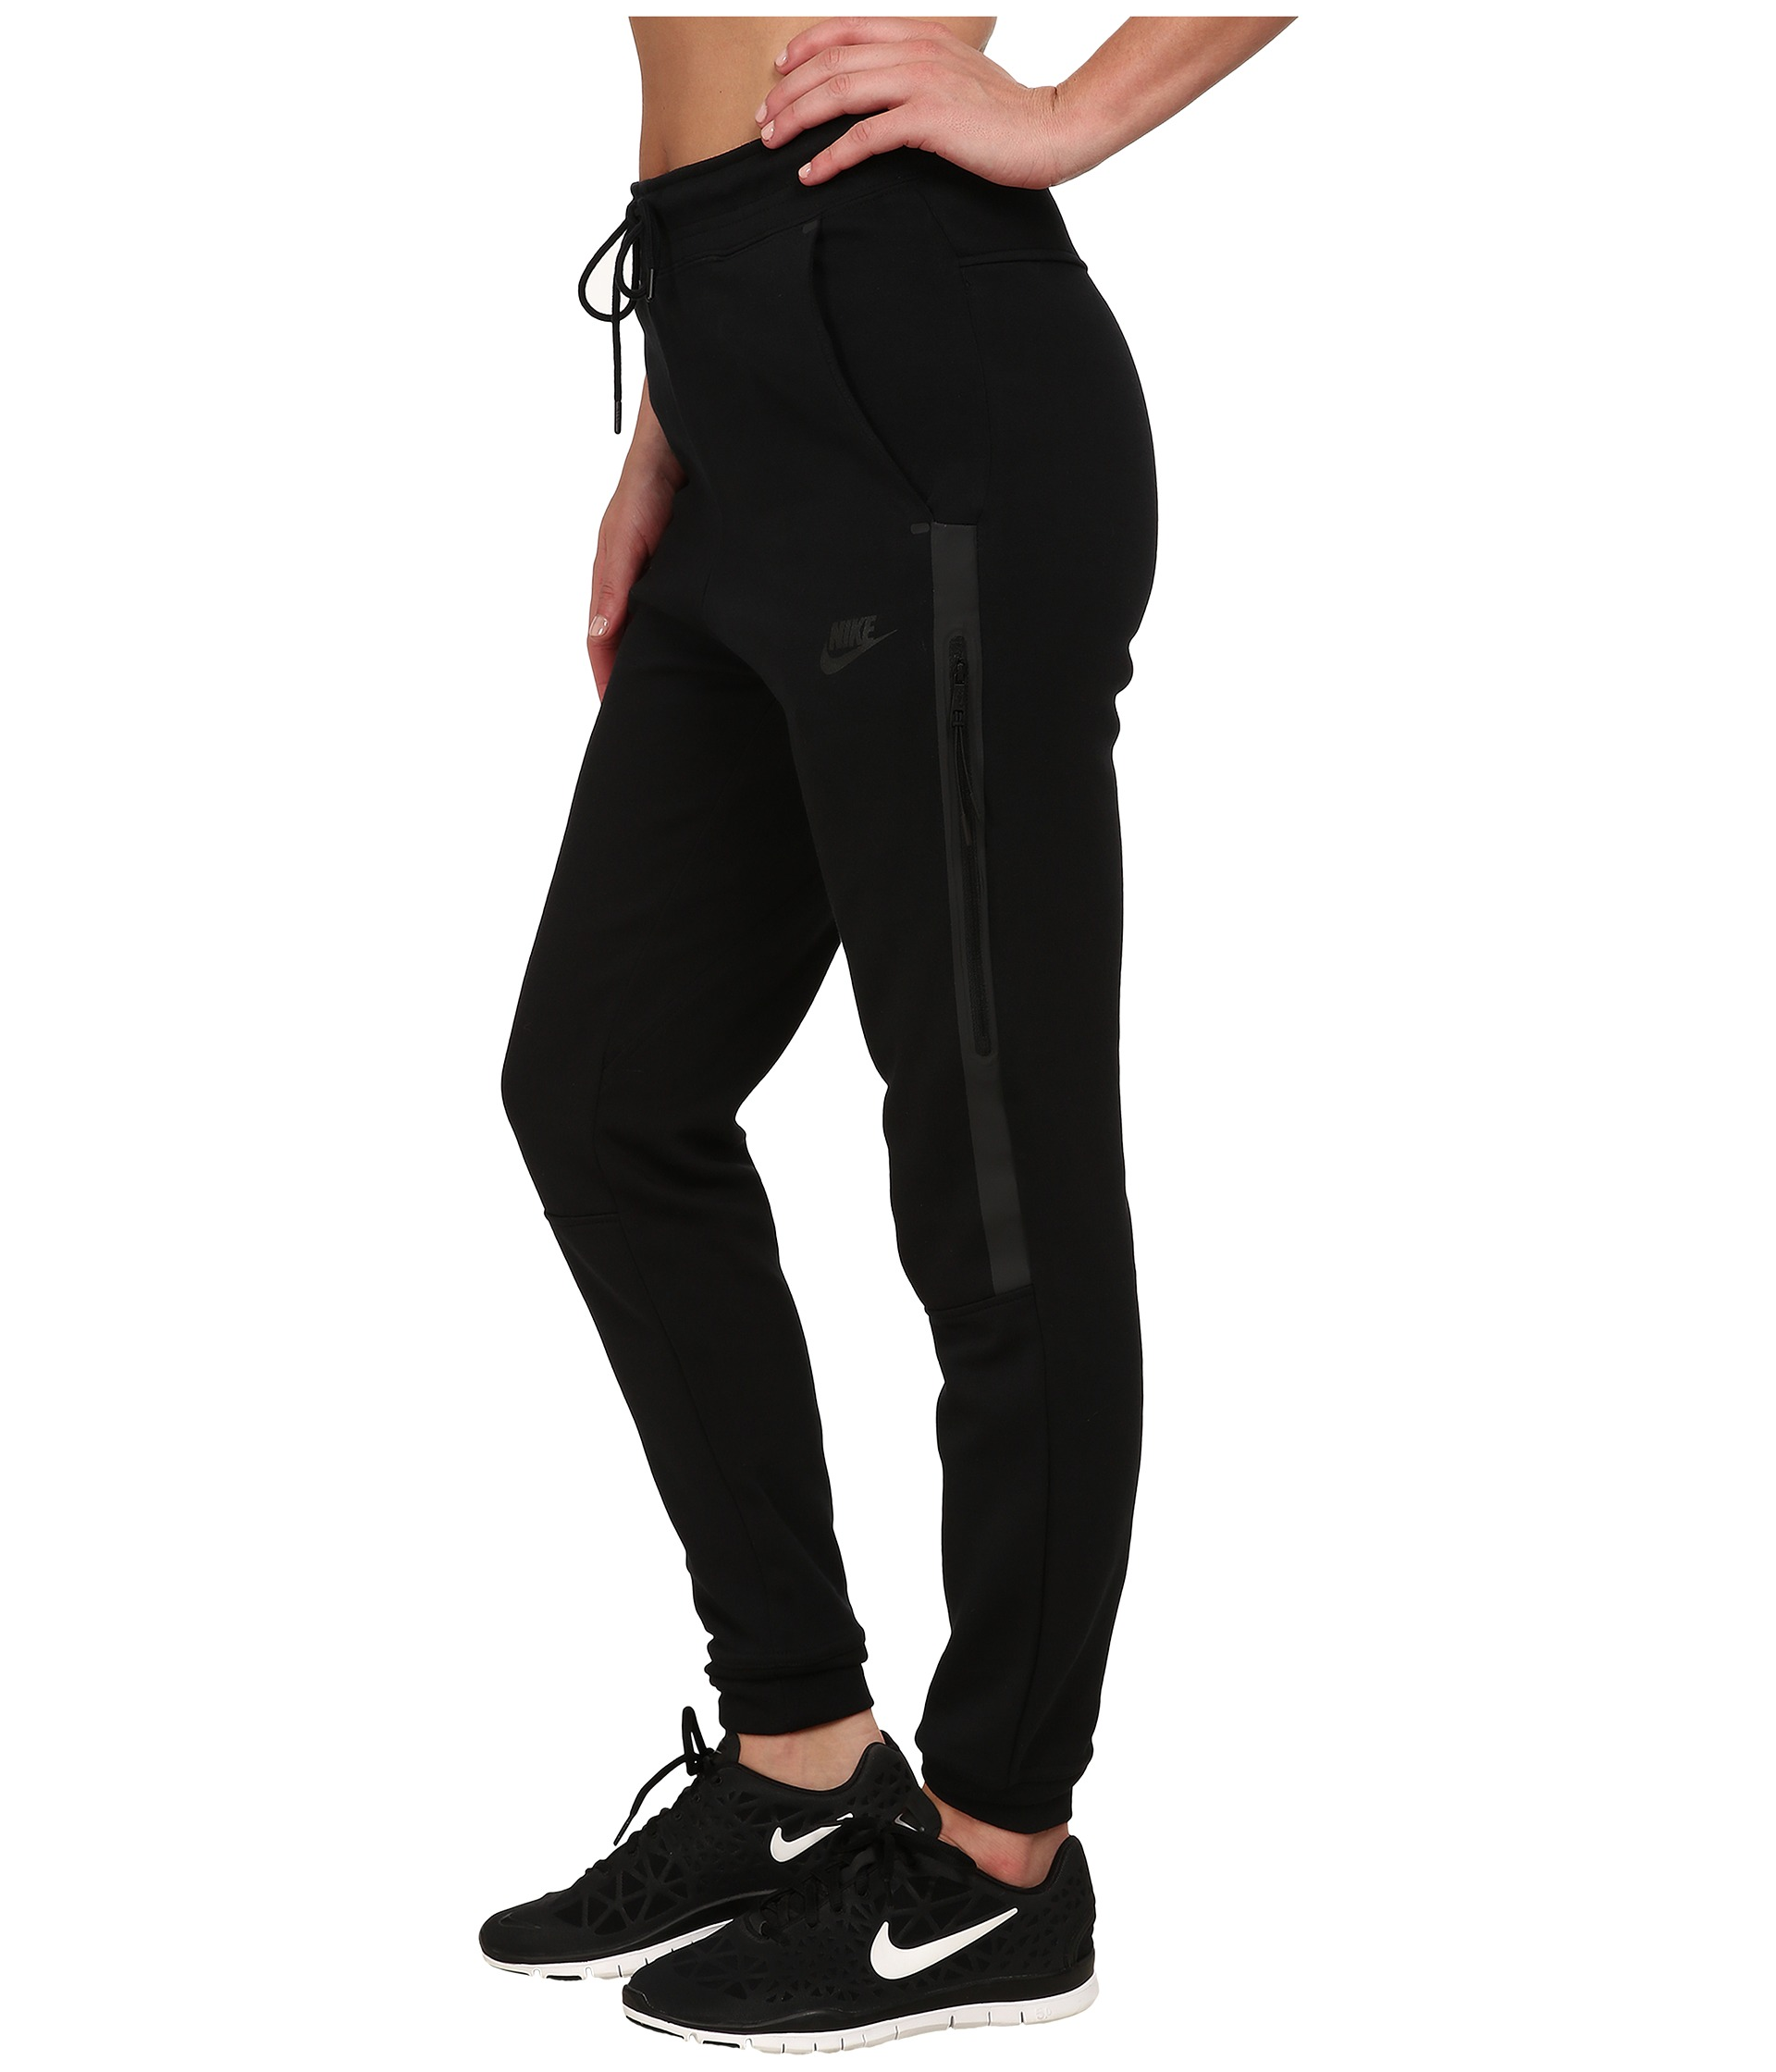 Amazing Womens Clothing  Nike Sportswear Womens Tech Fleece Pants  Carbon